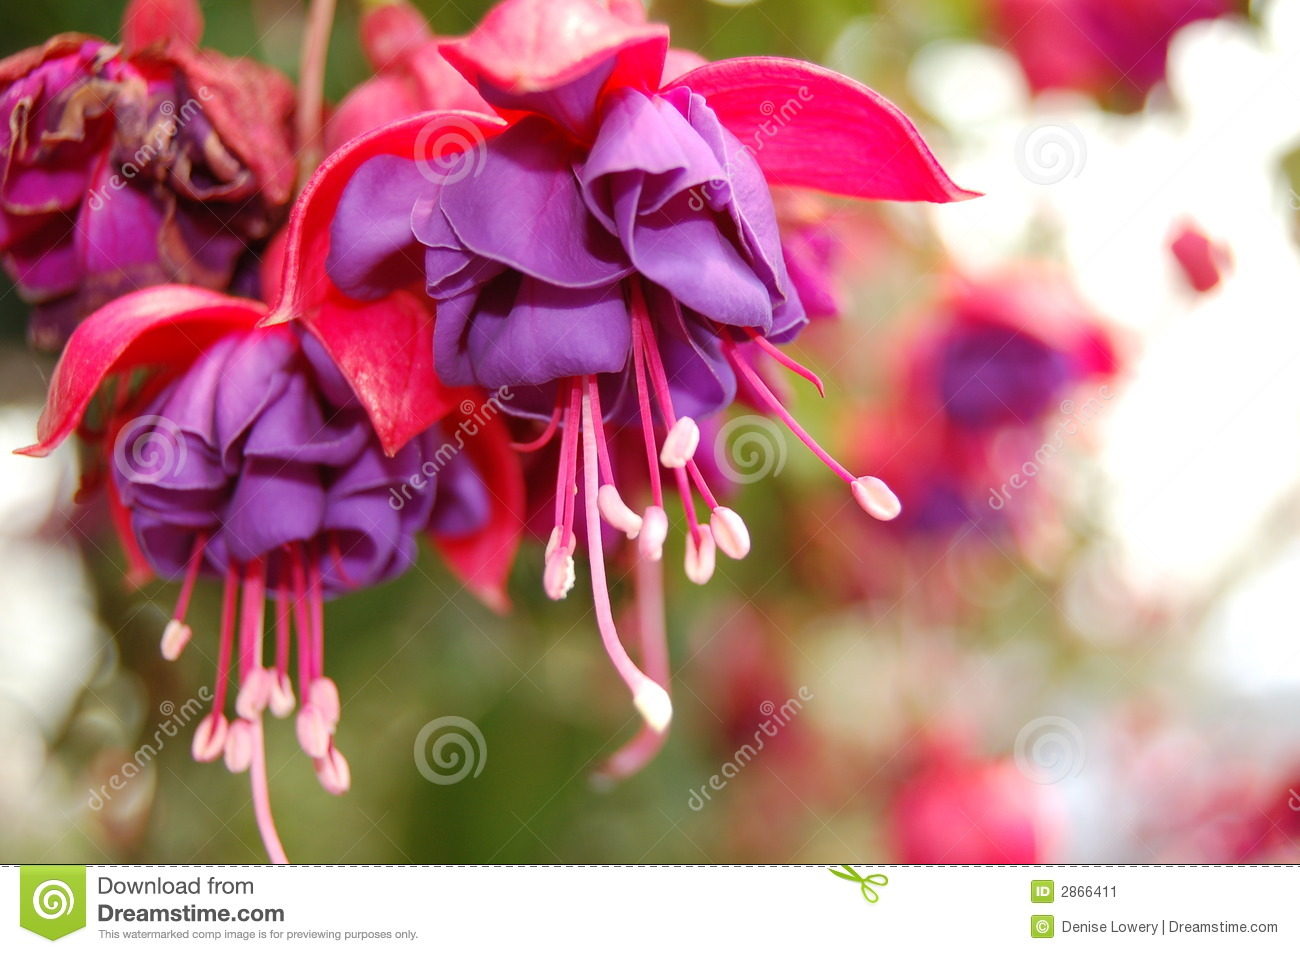 Bleeding hearts stock image image of pink gardening 2866411 bleeding hearts izmirmasajfo Choice Image